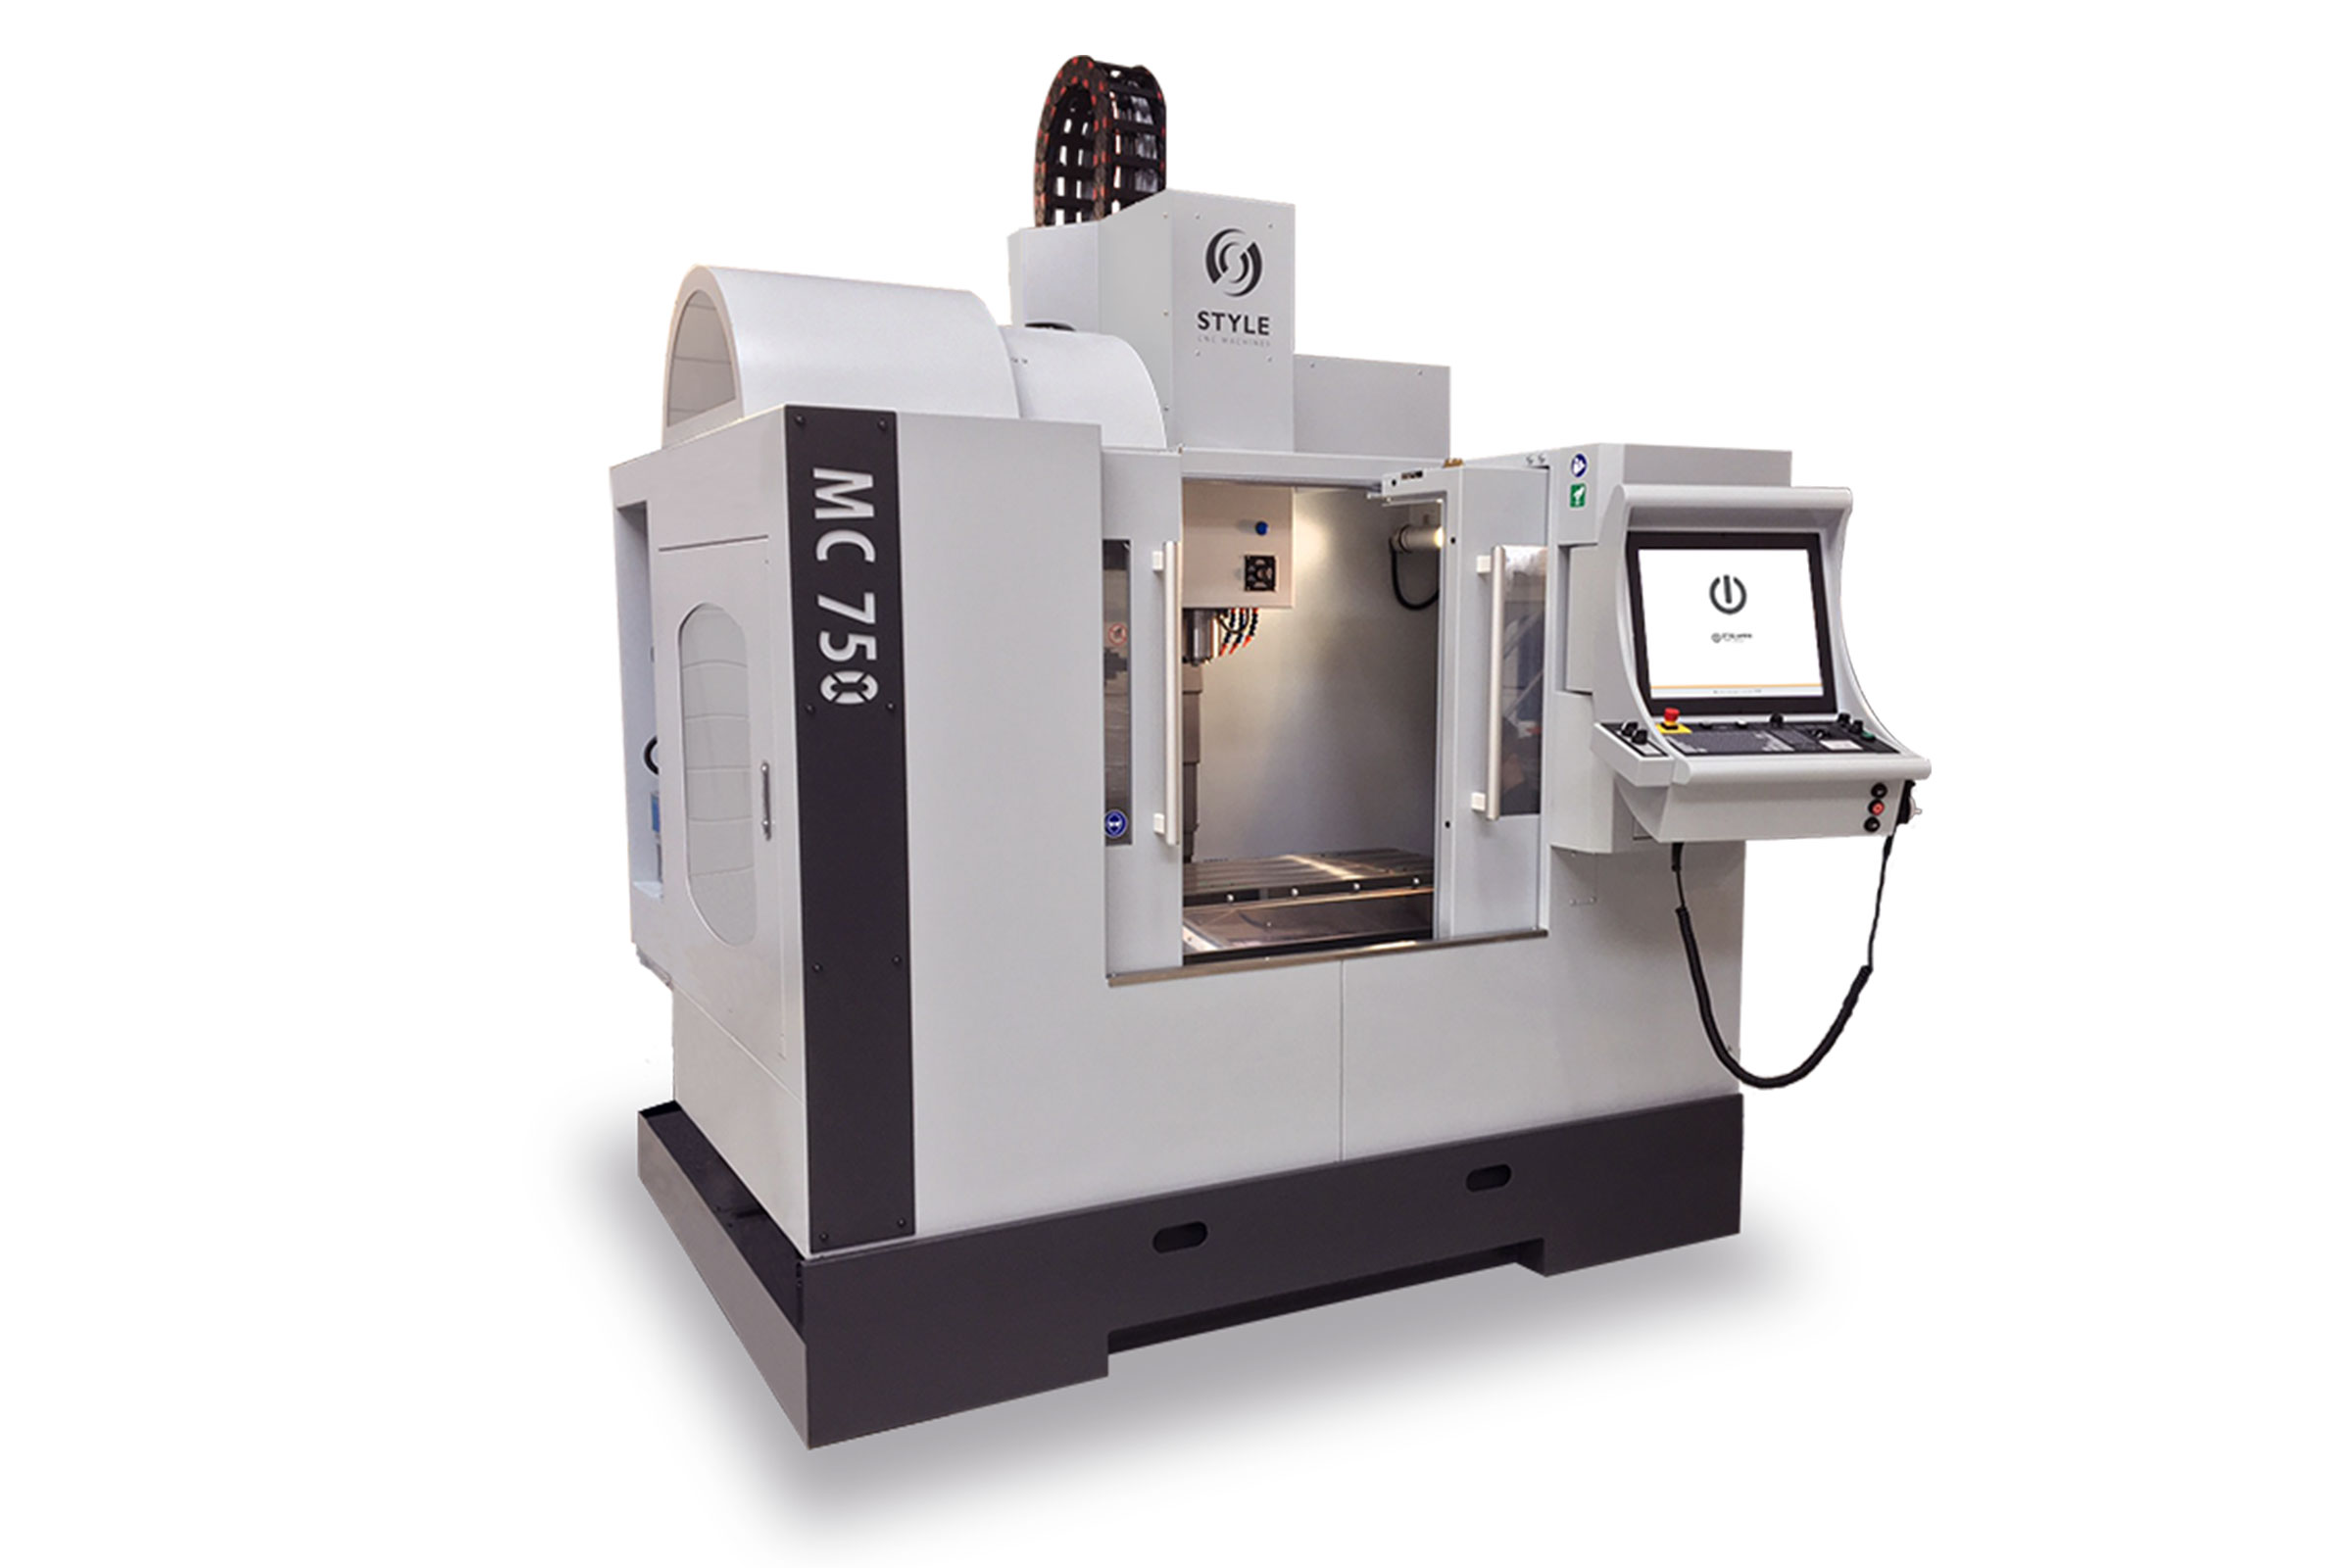 STYLE MC 750 CNC bewerkingscentrum